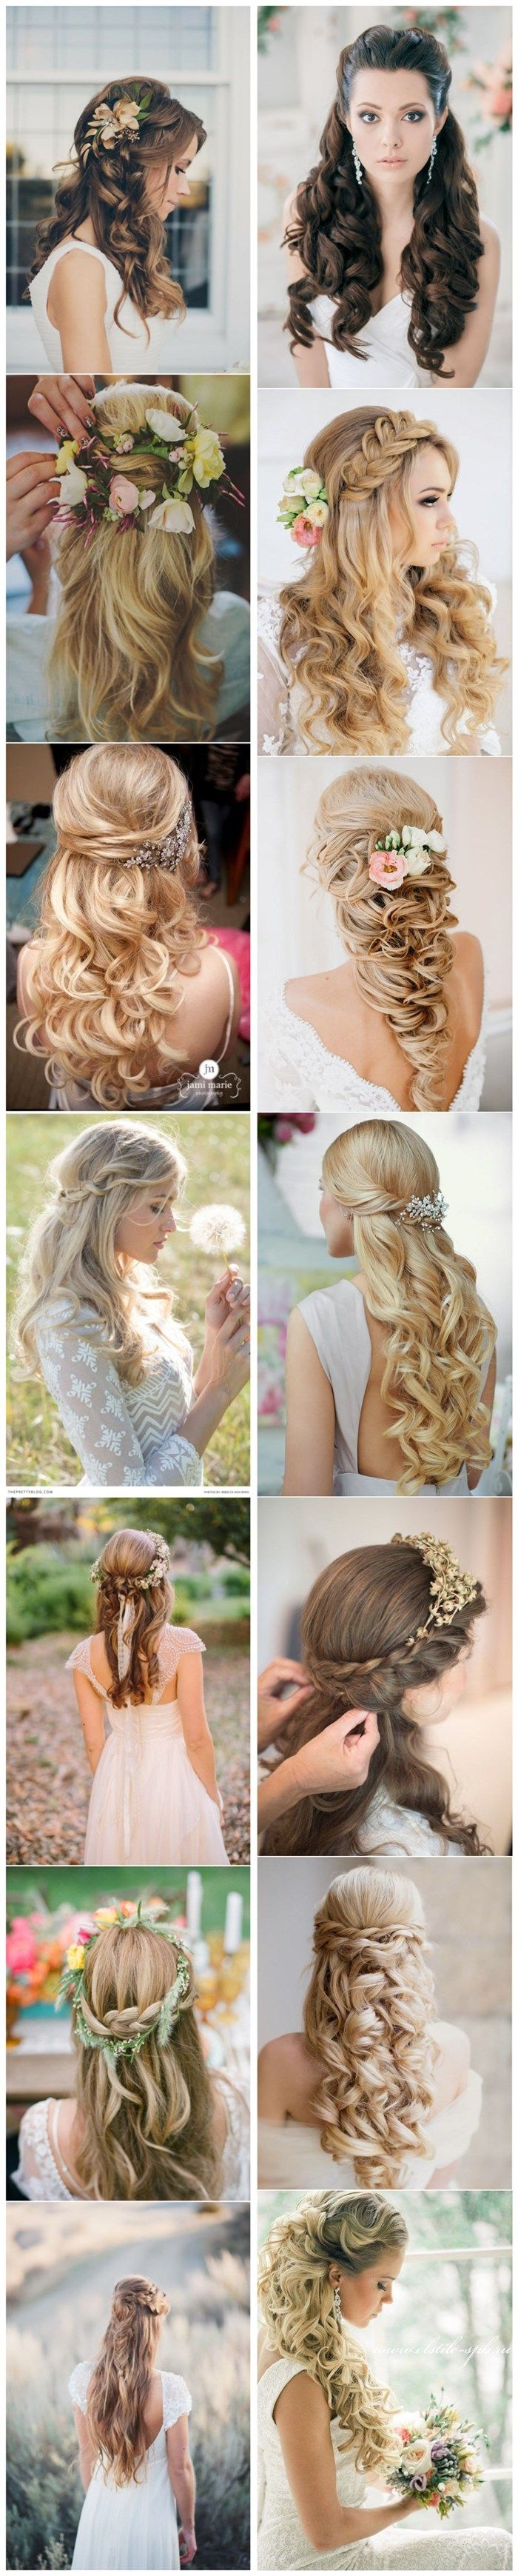 Addilyn: thinking about wedding hair styles for my and Lukes wedding! What one should I do? #promdress #coniefoxdress